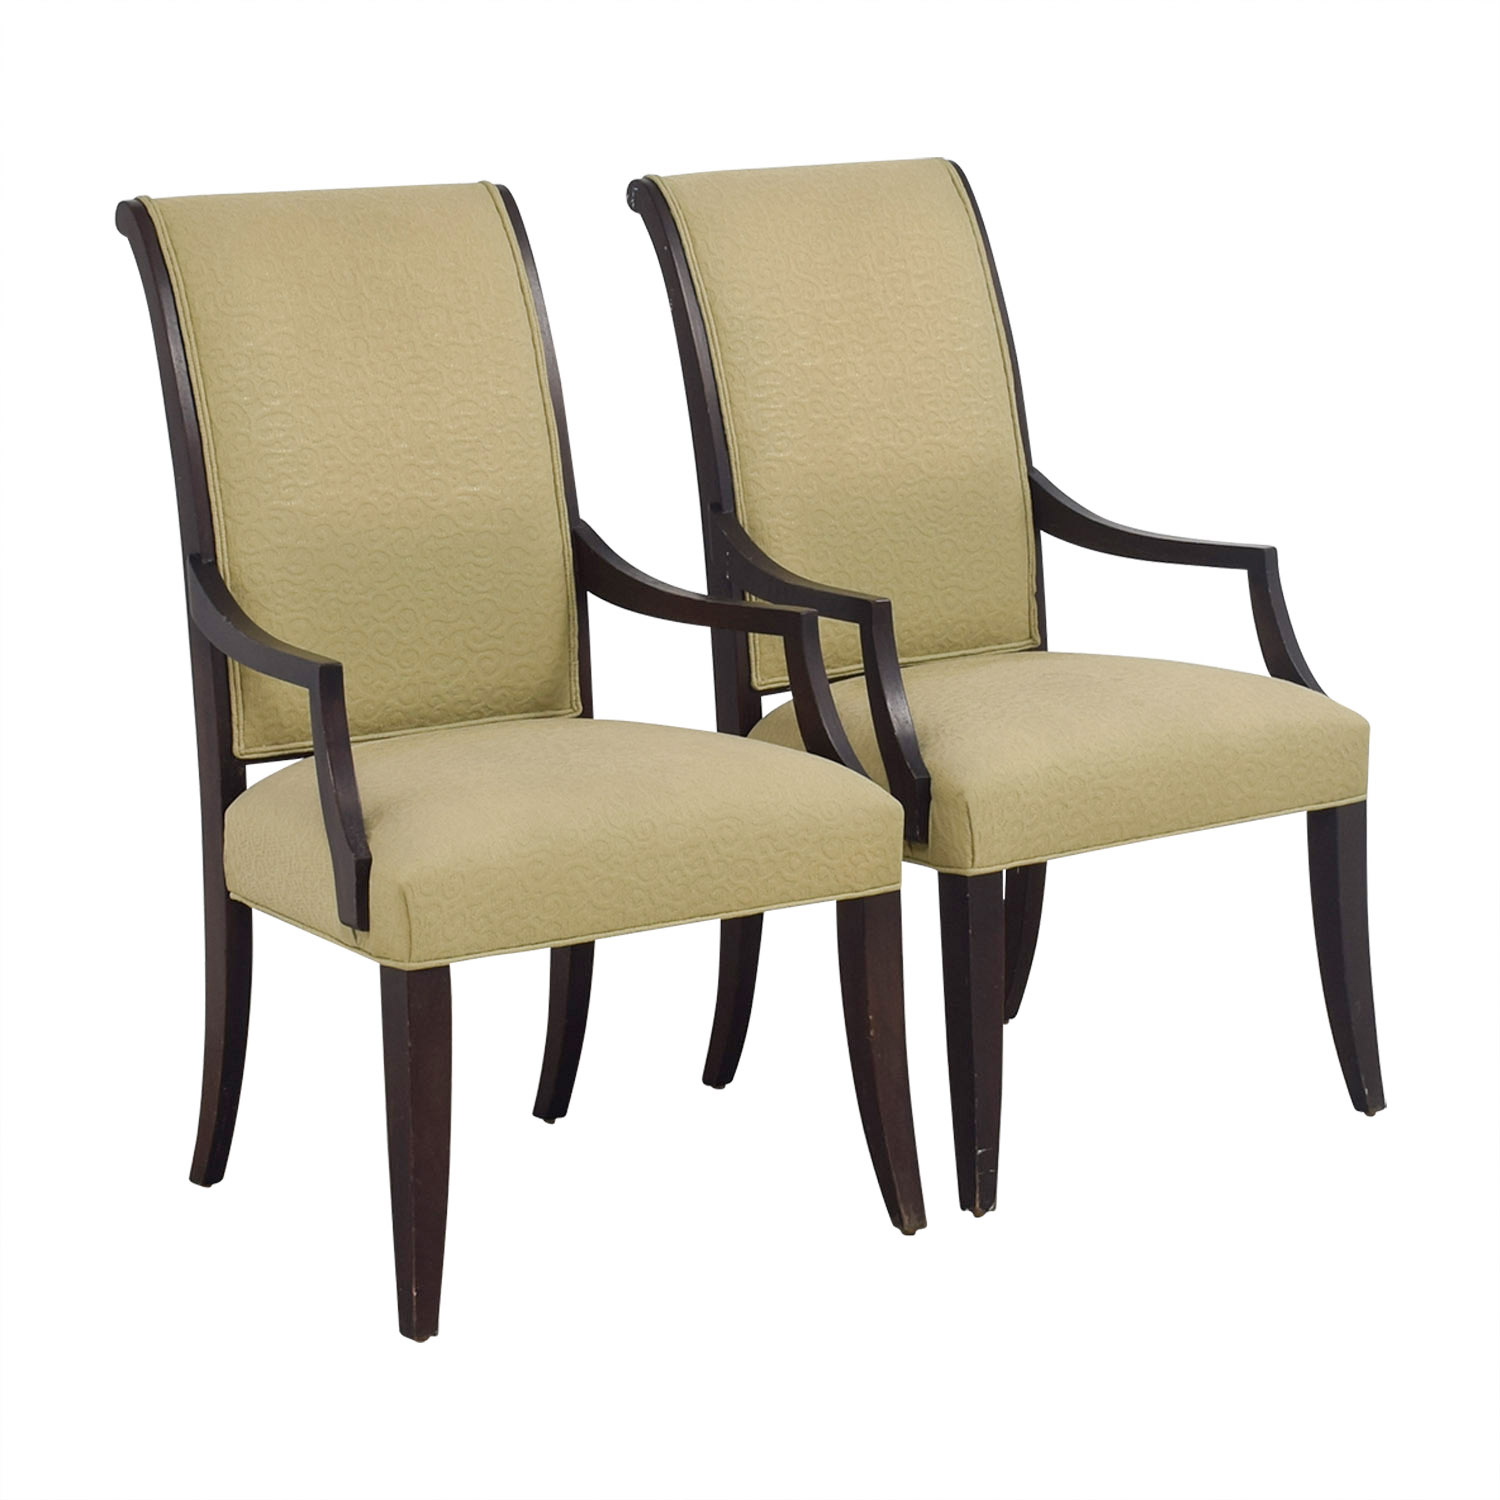 ethan allen recliners chairs oak and leather dining room 76 off beige jacquard